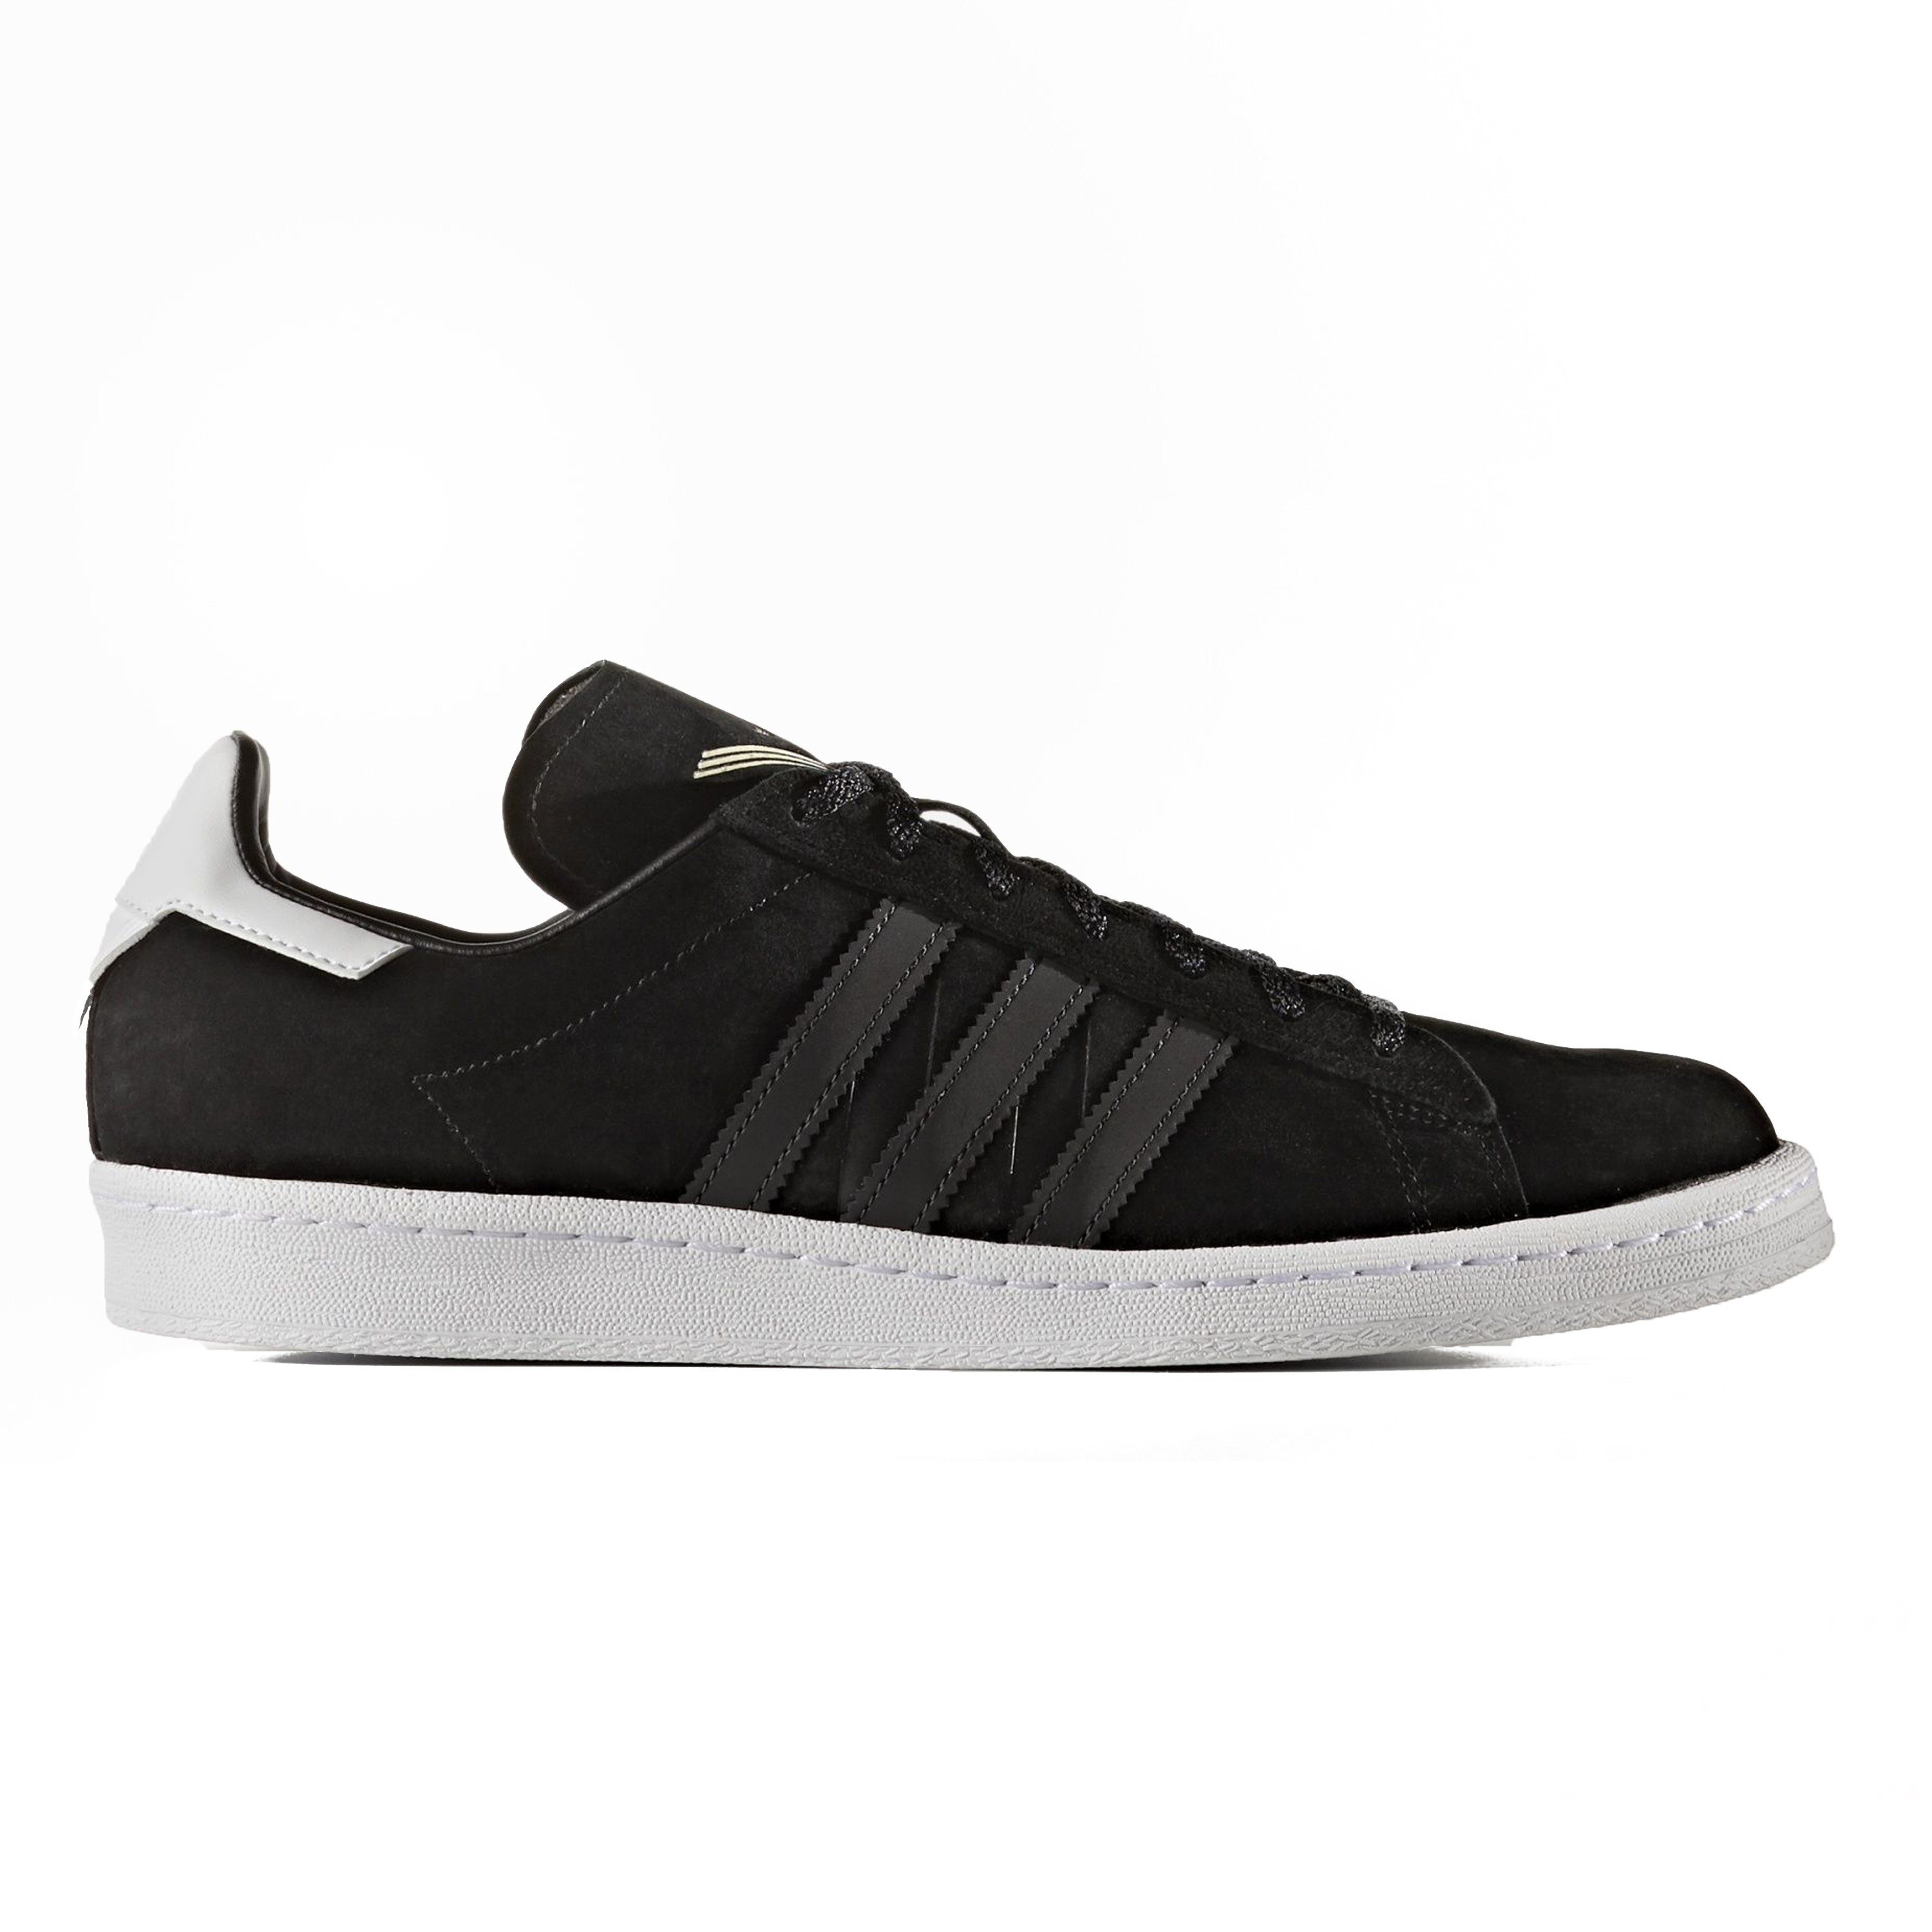 new style 5d80e bf843 adidas campus 80s white mountaineering